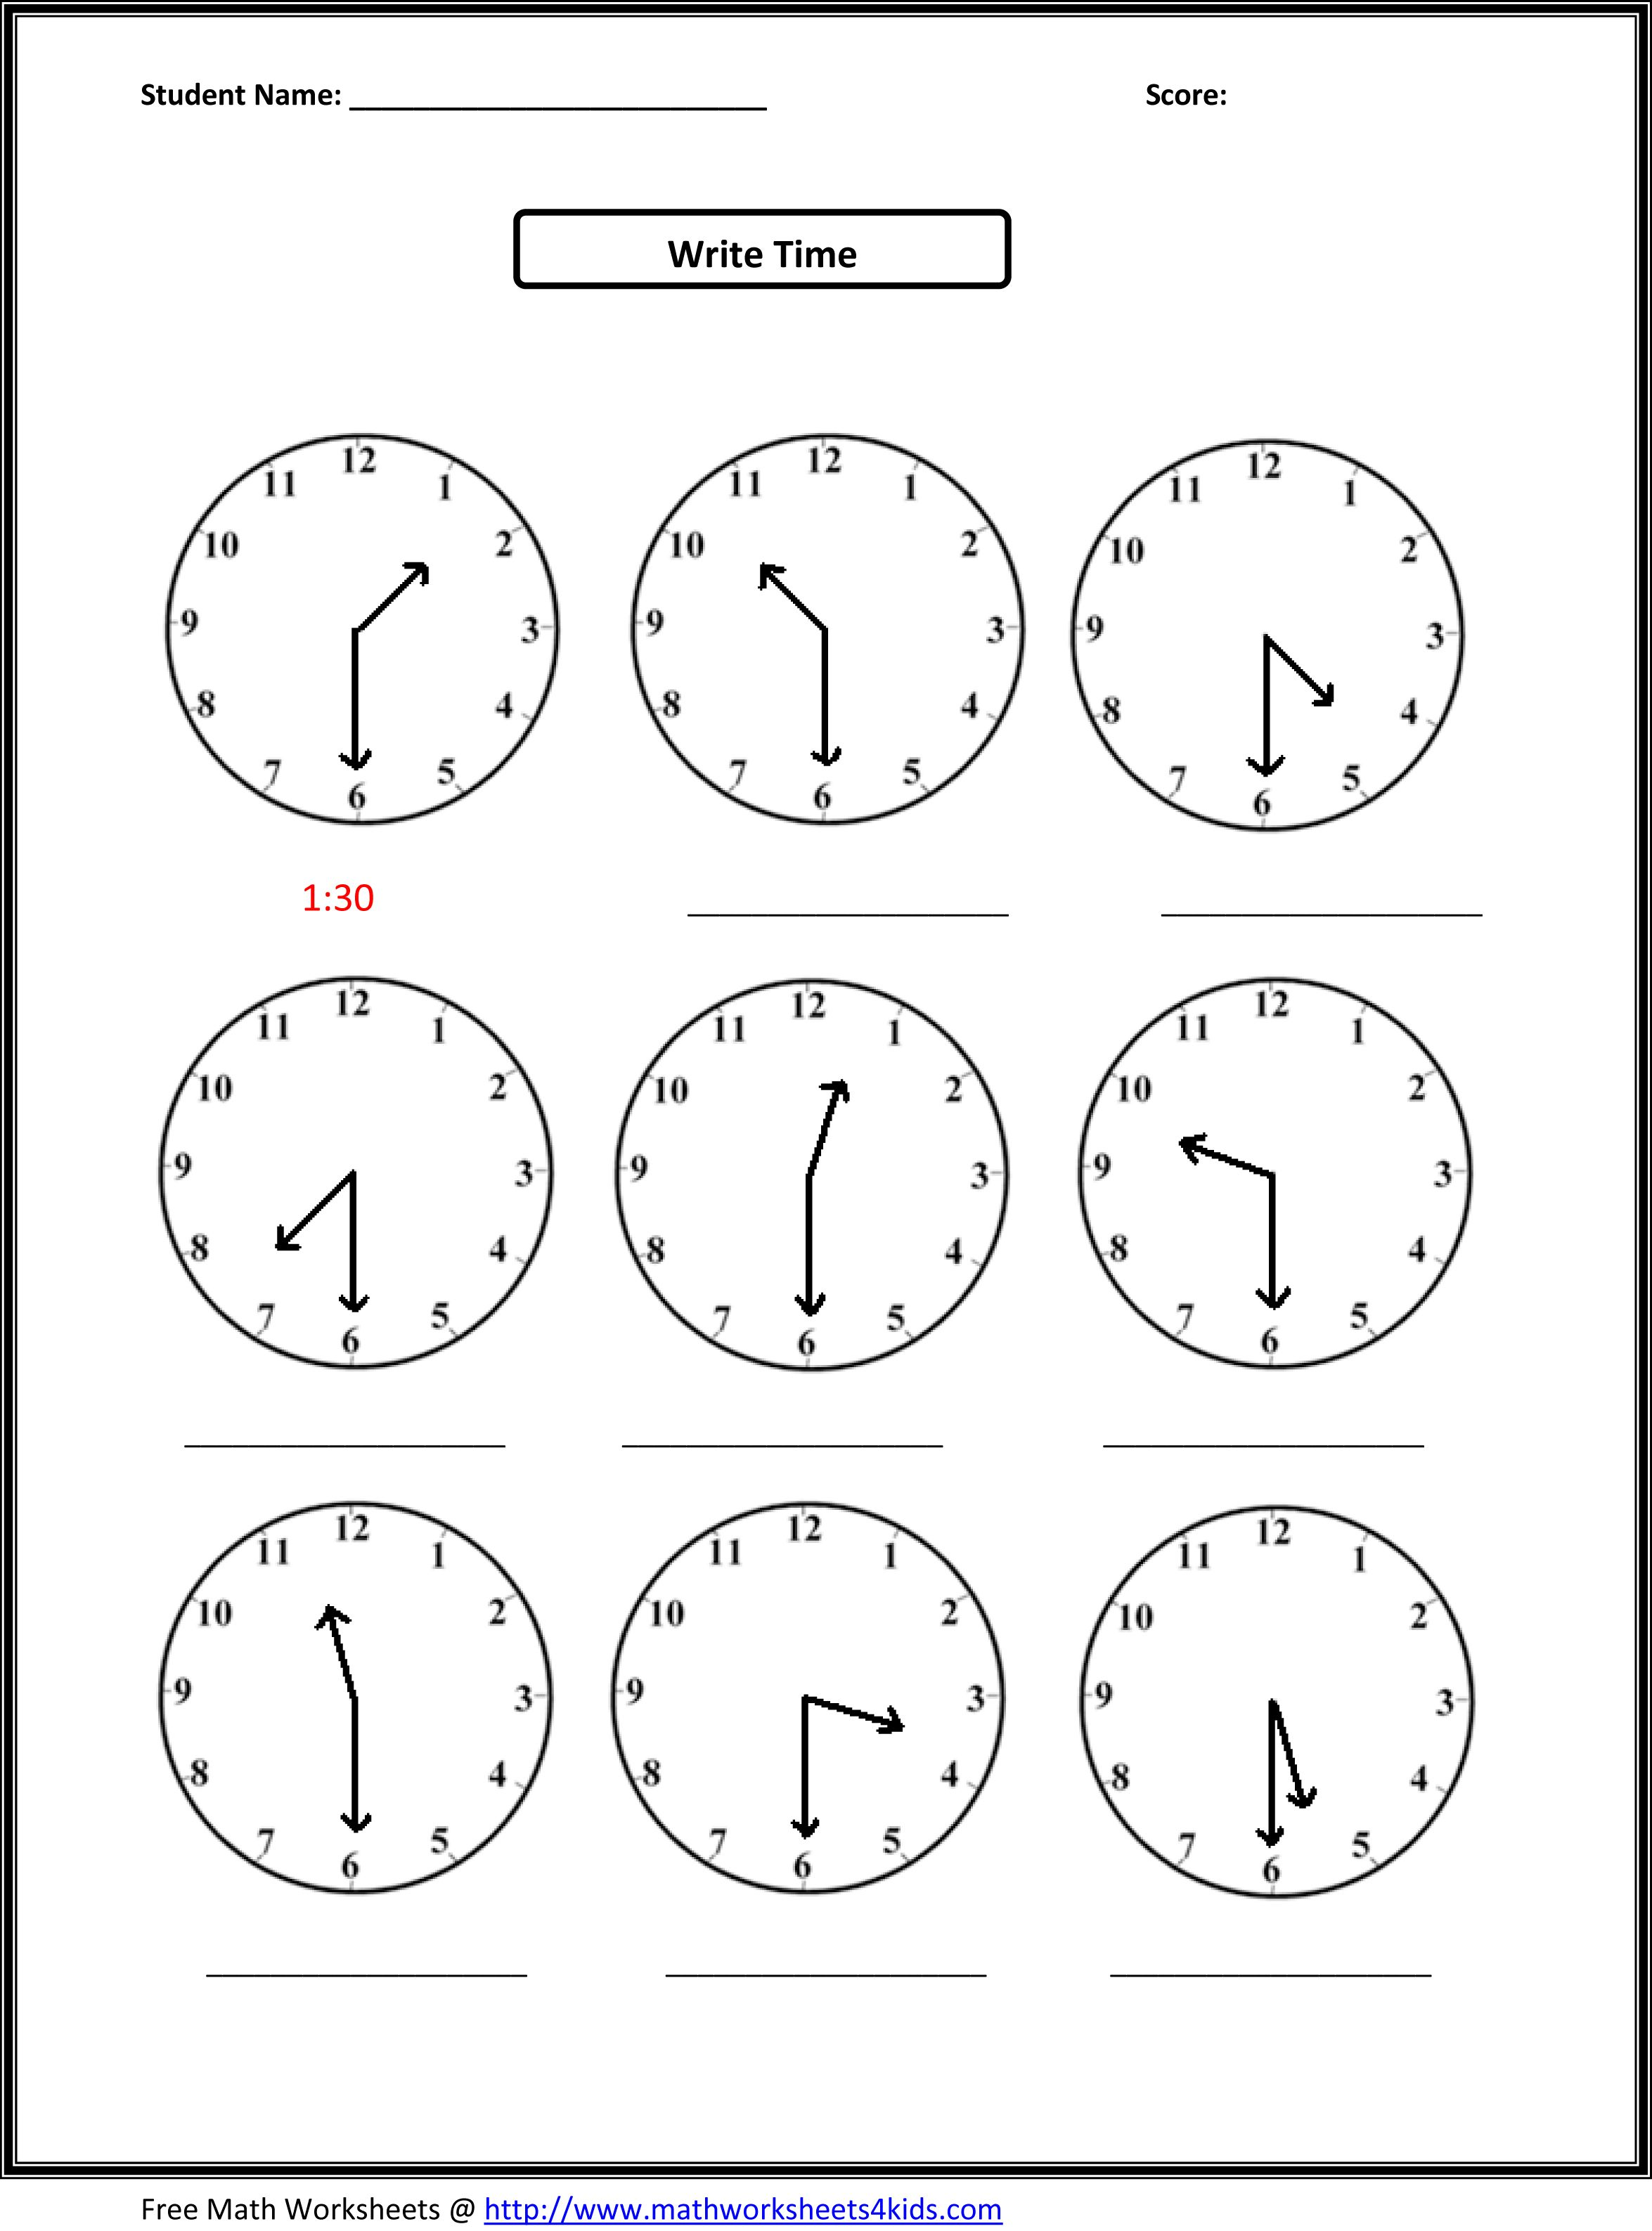 Proatmealus  Winsome Worksheet On Time For Grade   Reocurent With Likable Free Printable Telling Time Worksheets Nd Grade  Reocurent With Beauteous Main Idea Worksheets Second Grade Also Solve The Equations Worksheet In Addition Wh Question Worksheet And Solving Equations Using Substitution Worksheet As Well As Worksheets On Subject And Predicate Additionally Comparing Quantities Worksheets From Reocurentcom With Proatmealus  Likable Worksheet On Time For Grade   Reocurent With Beauteous Free Printable Telling Time Worksheets Nd Grade  Reocurent And Winsome Main Idea Worksheets Second Grade Also Solve The Equations Worksheet In Addition Wh Question Worksheet From Reocurentcom